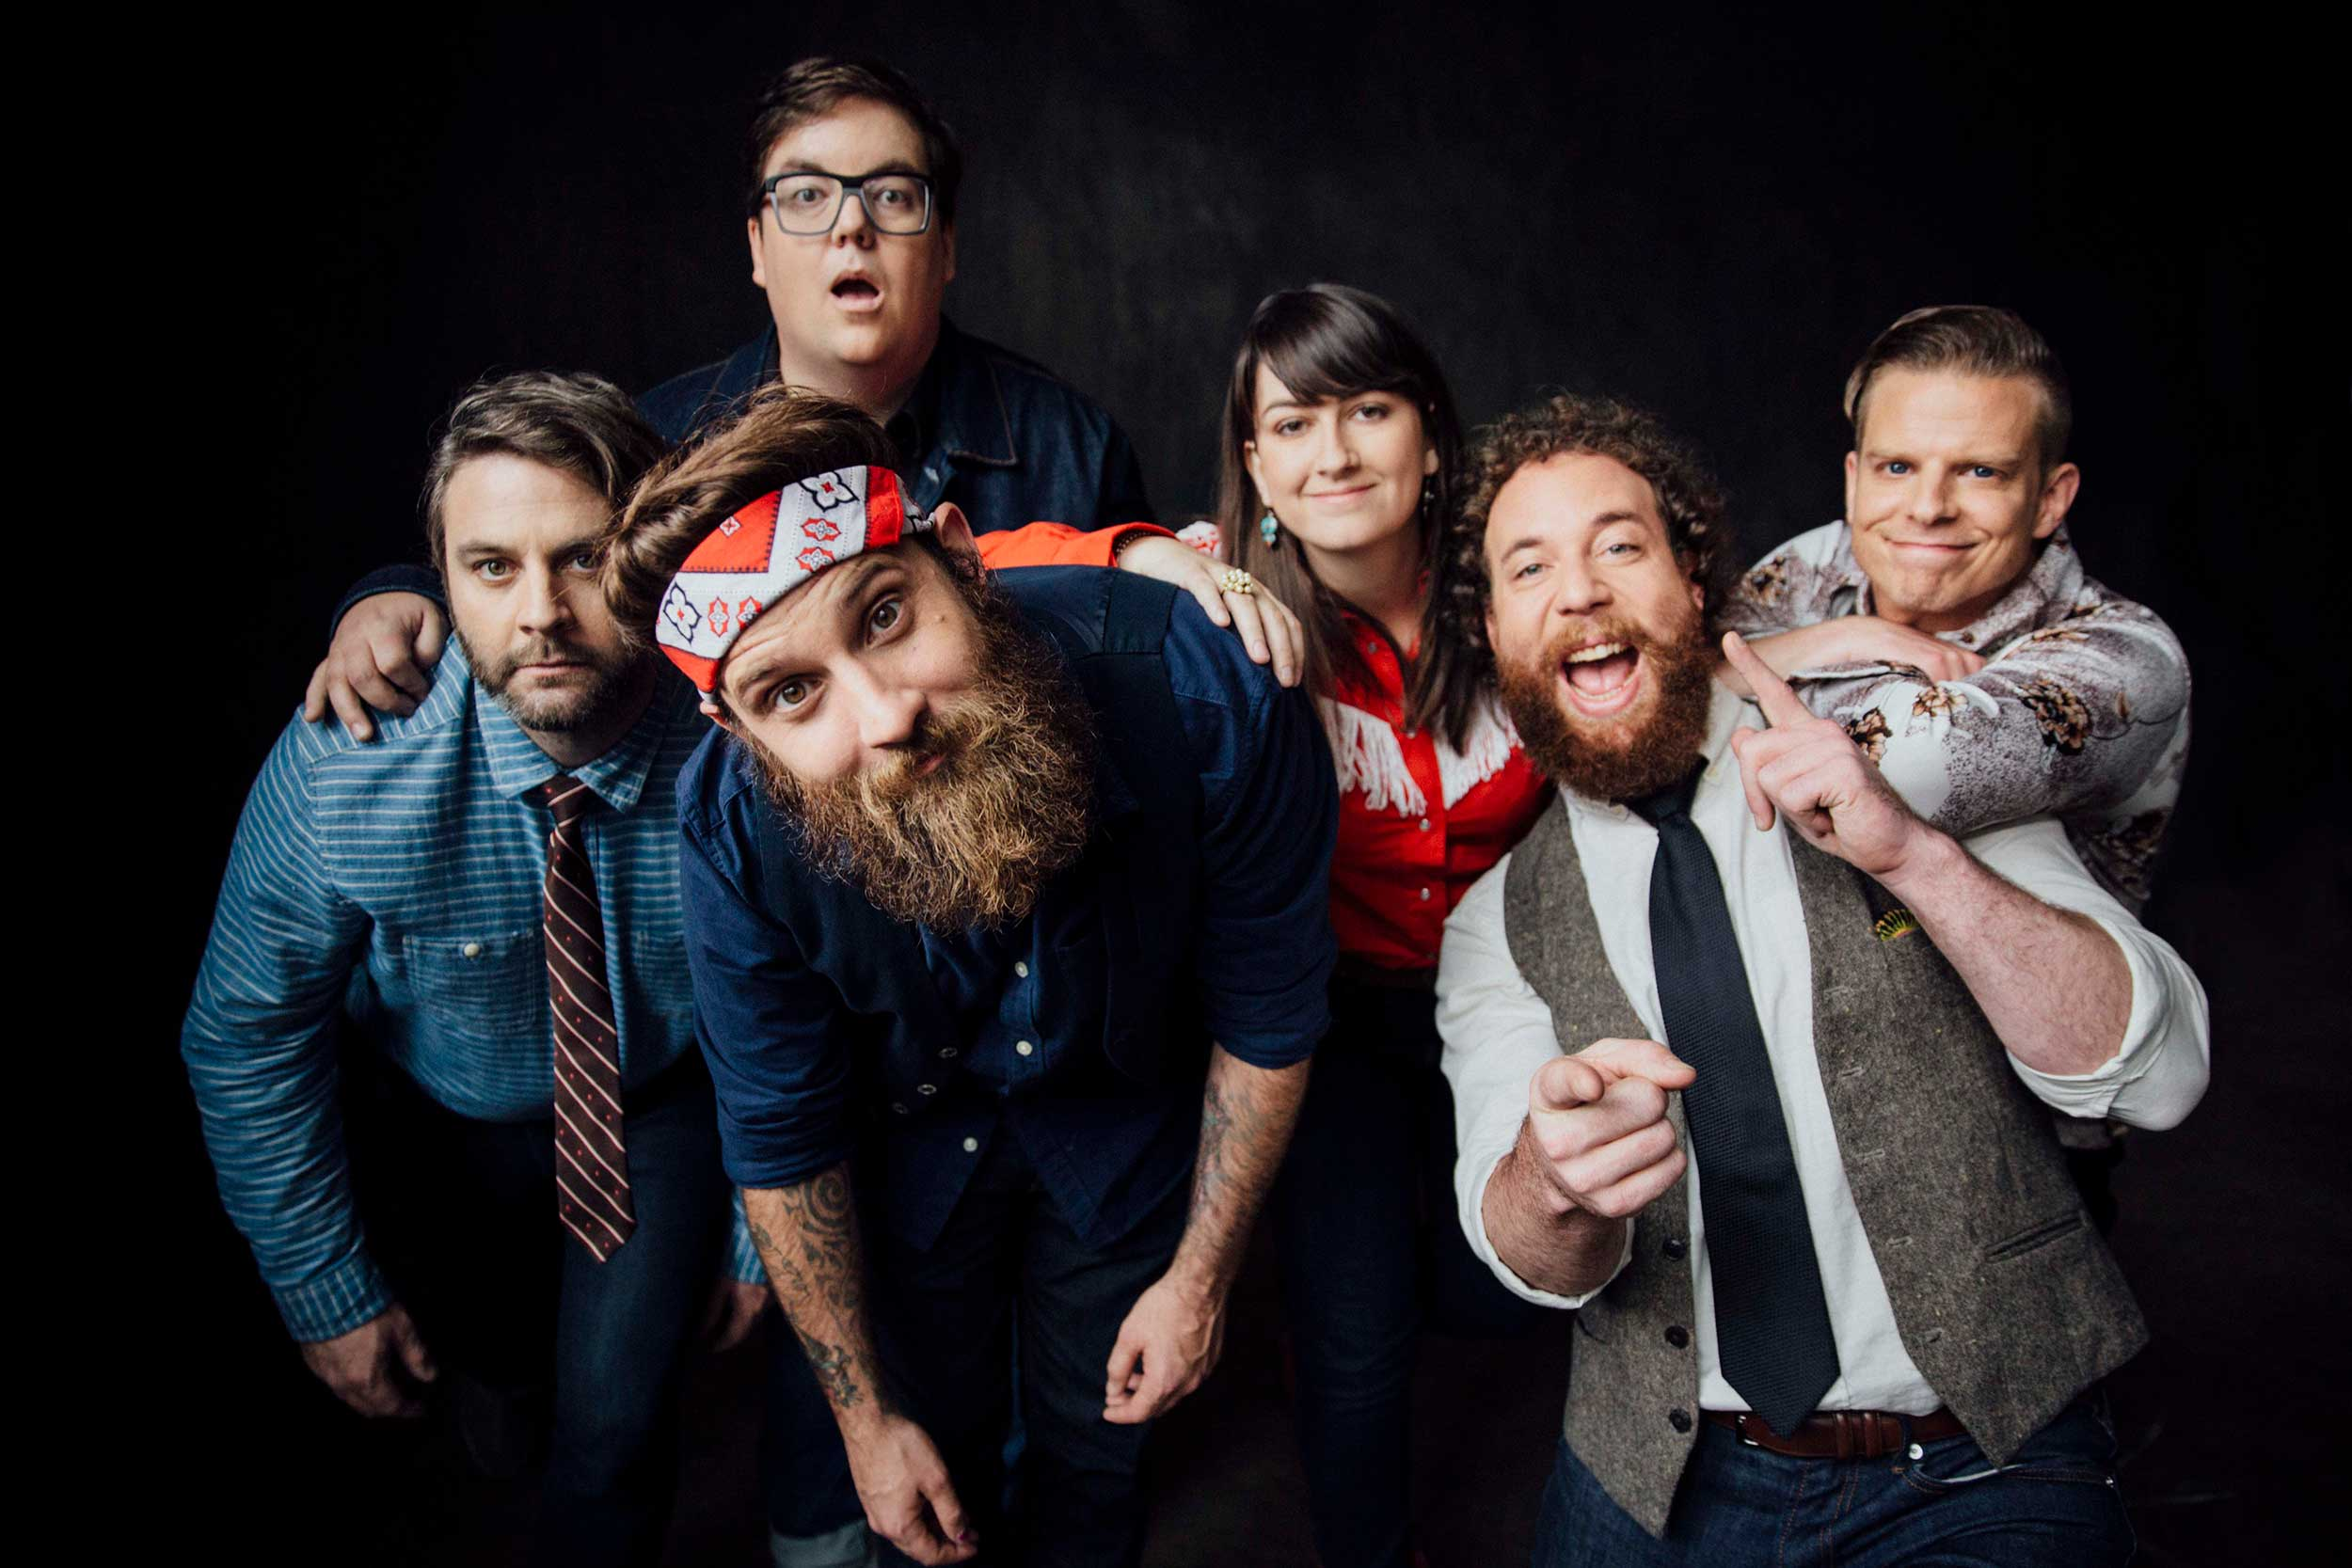 The band Strumbellas pose for photo